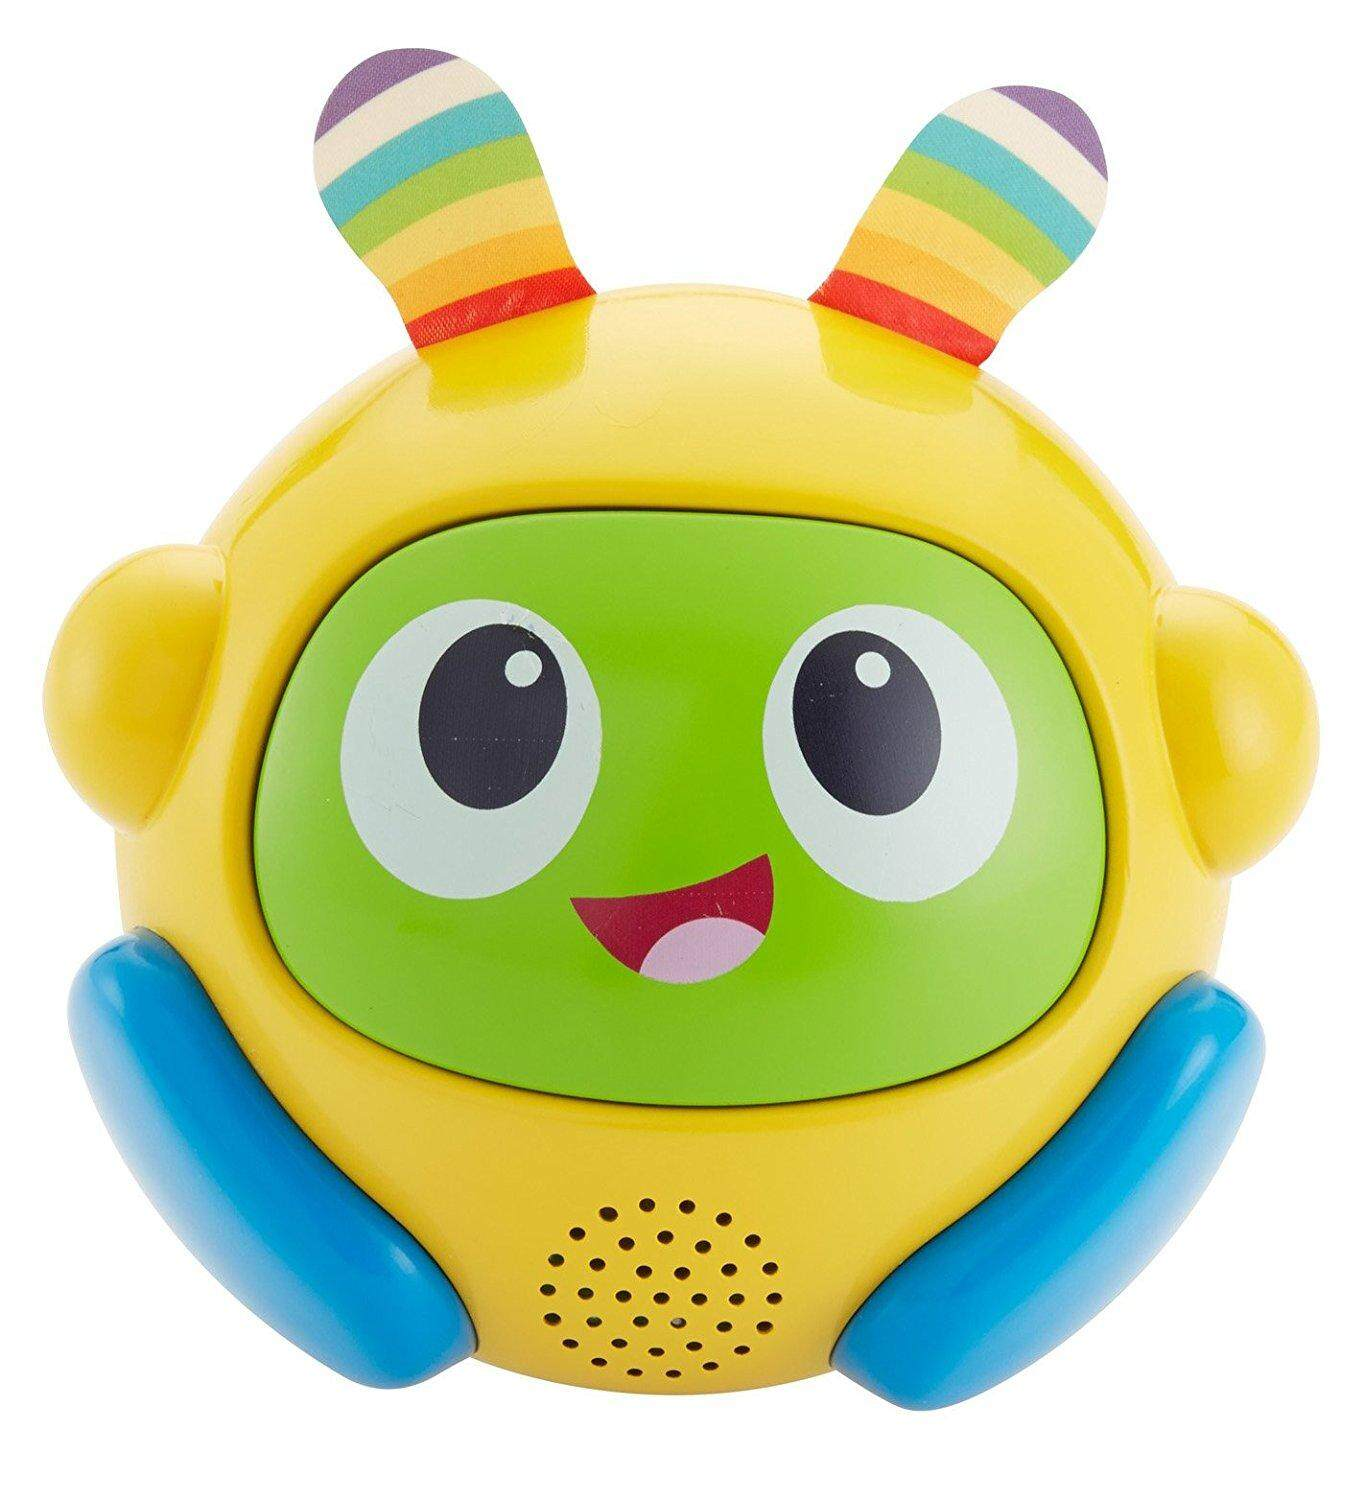 [Fisher-Price] Infant Bright Beats Spin & Crawl Tumble Ball baby toys